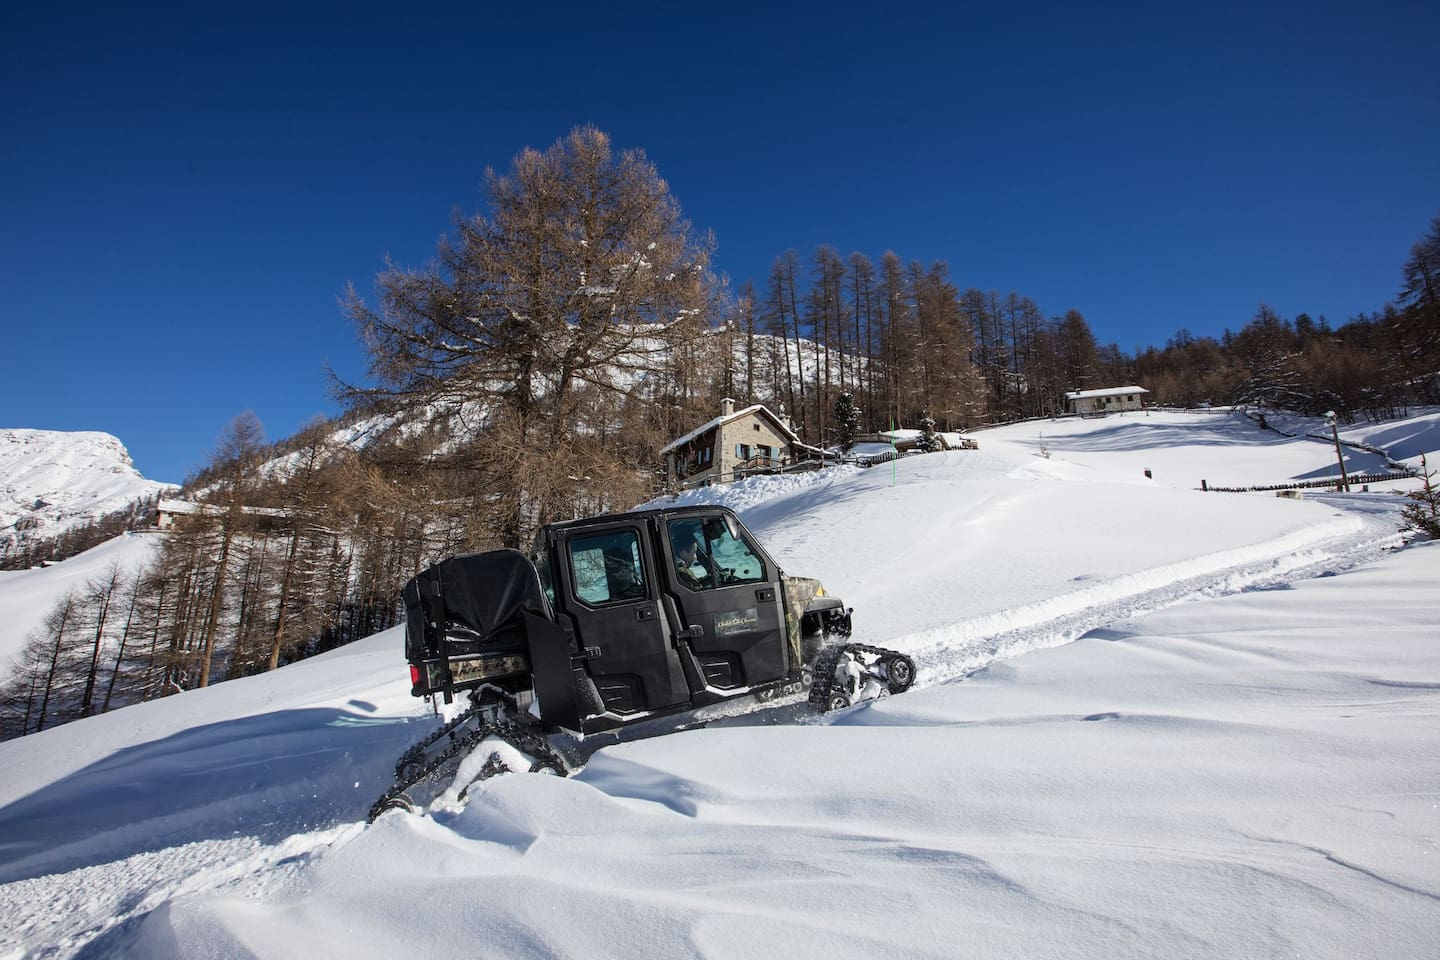 Chalet Charm vacanza relax e natura - Cabins for Rent in Livigno